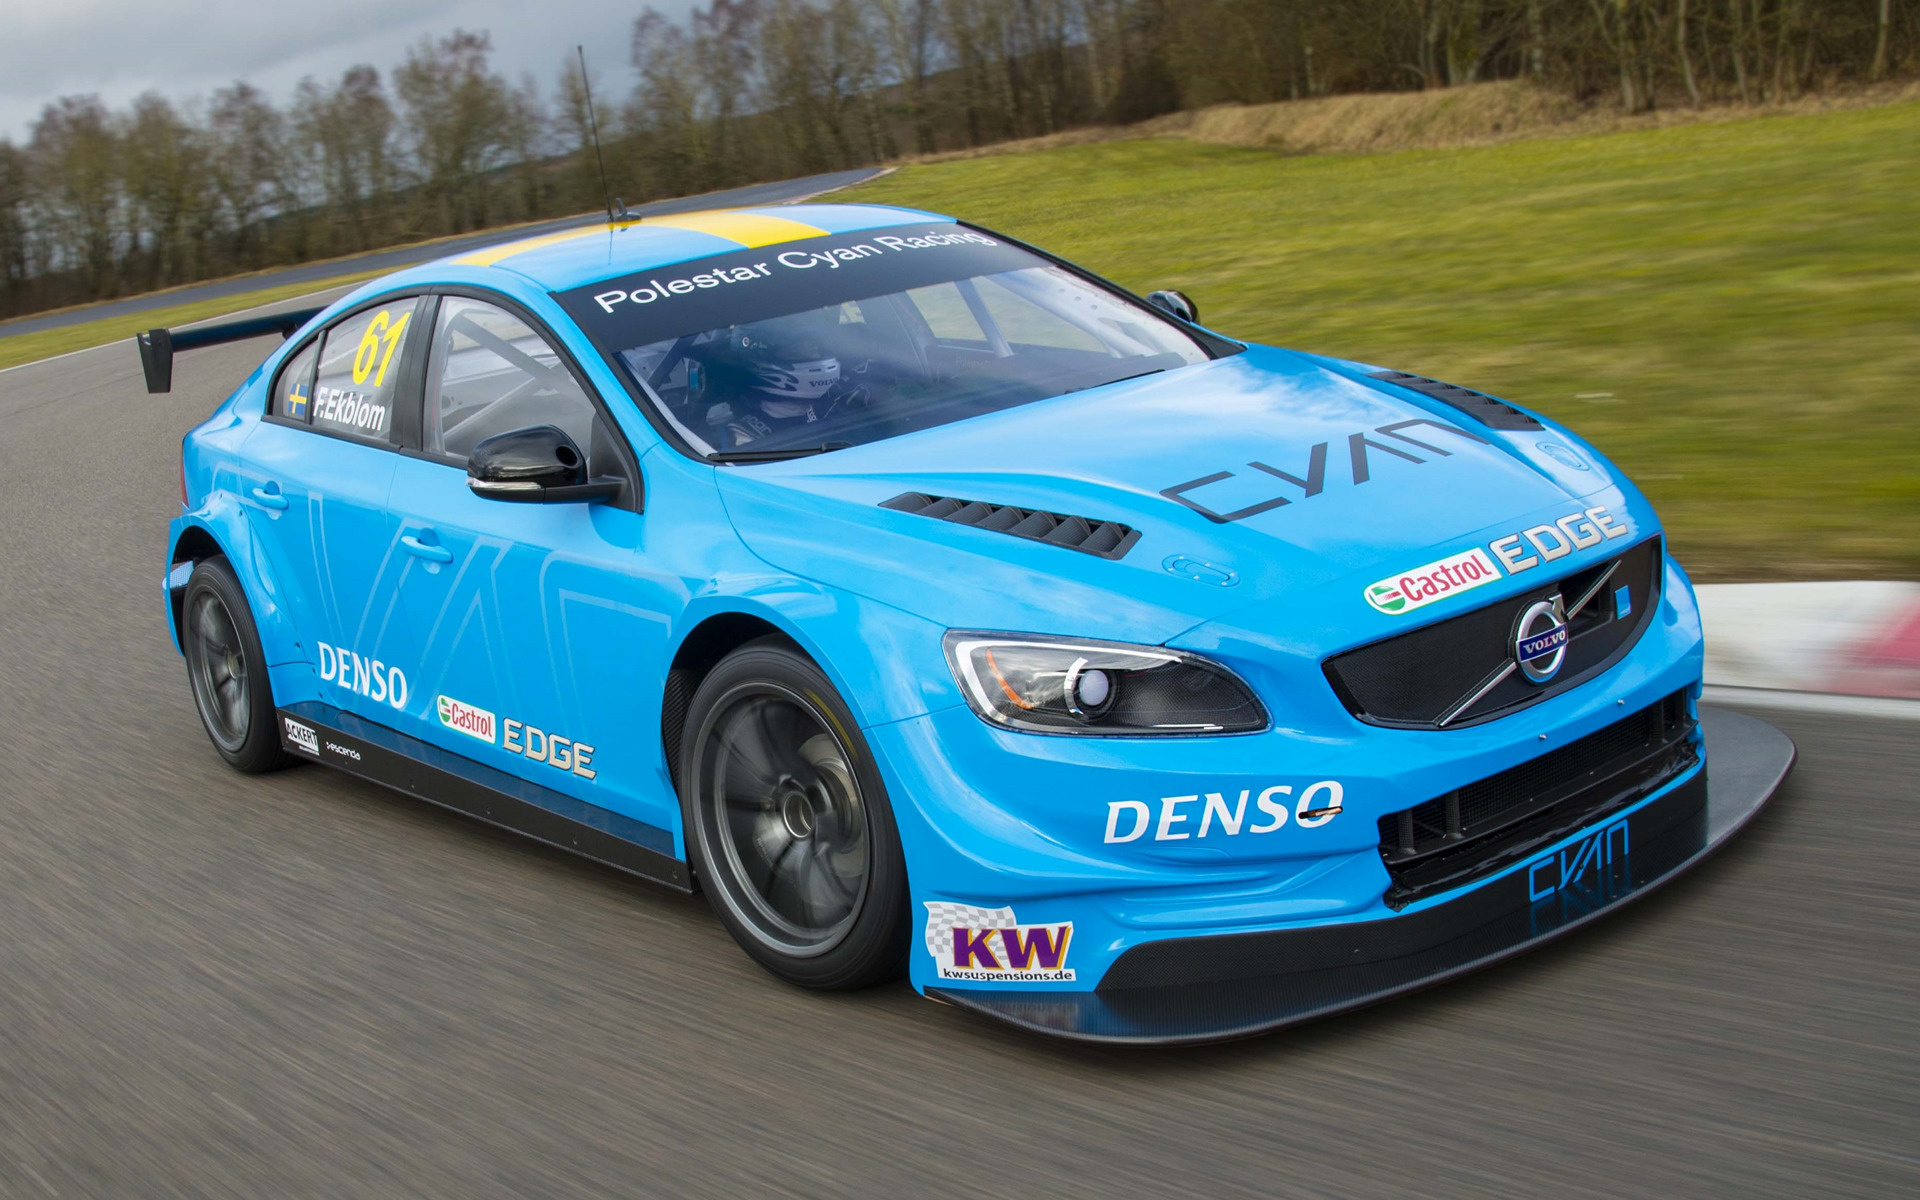 2016 Volvo S60 Polestar TC1 WTCC - Wallpapers and HD ...